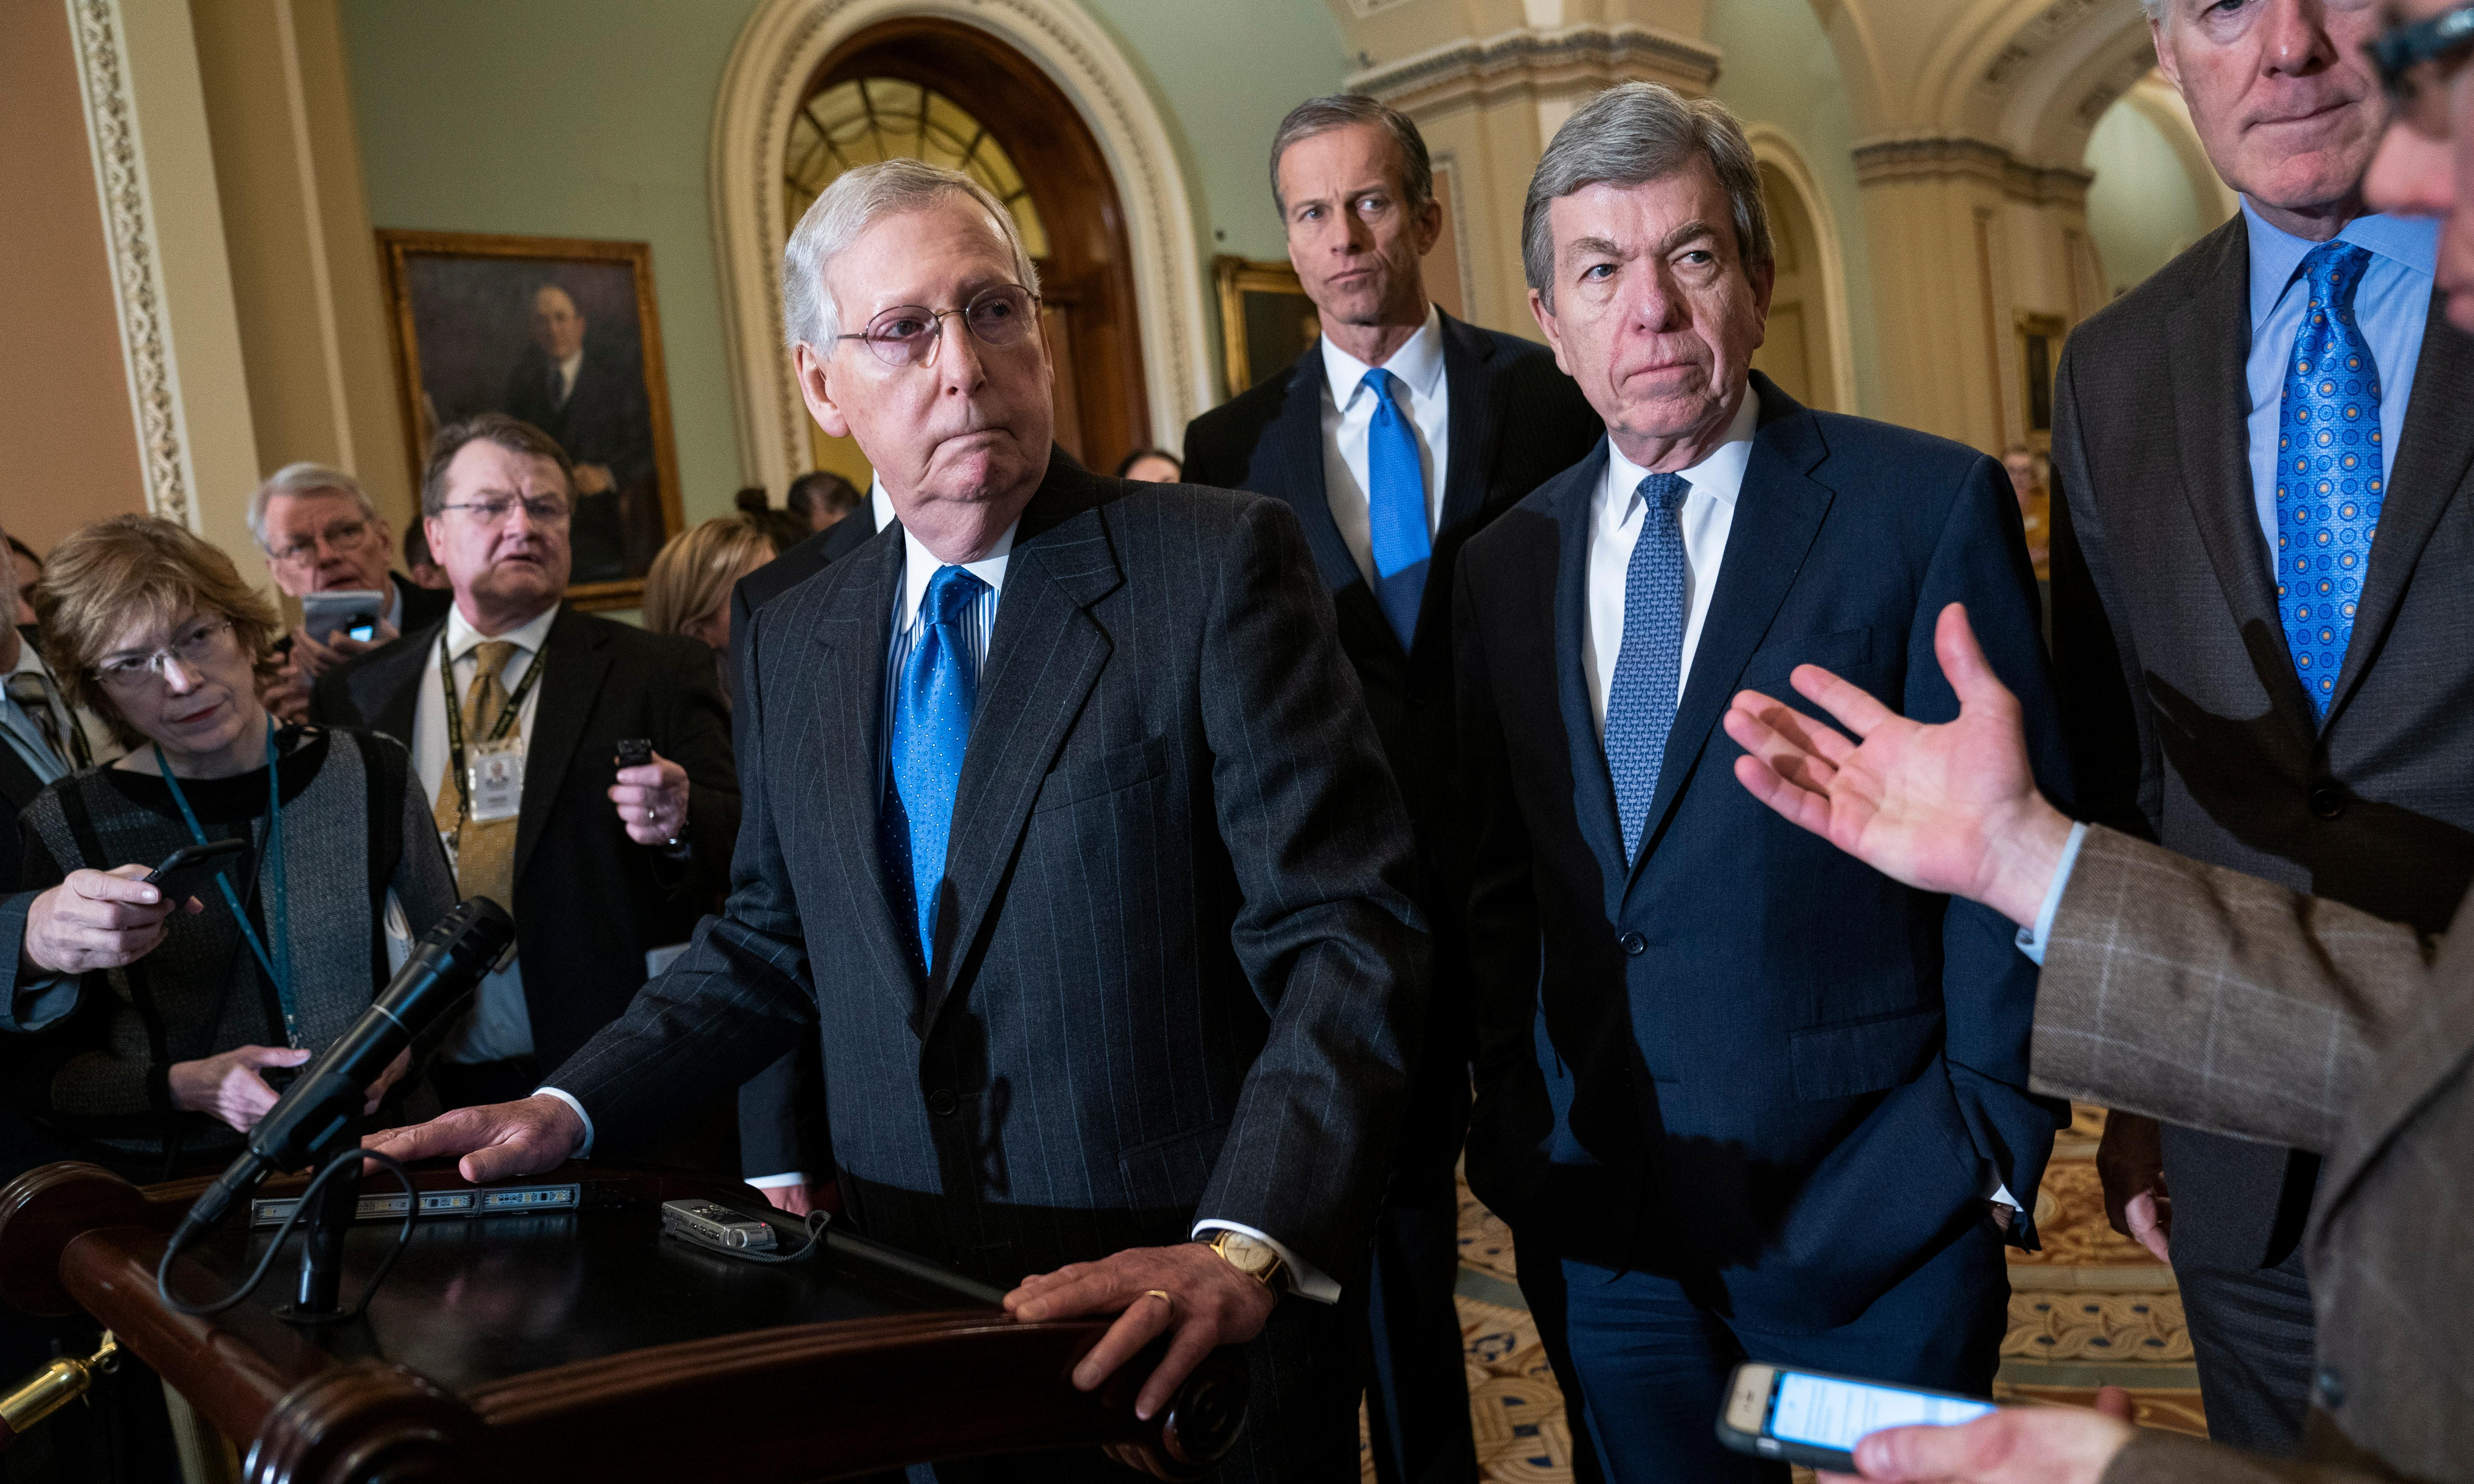 Criminal justice reform bill headed for vote after McConnell comes off fence